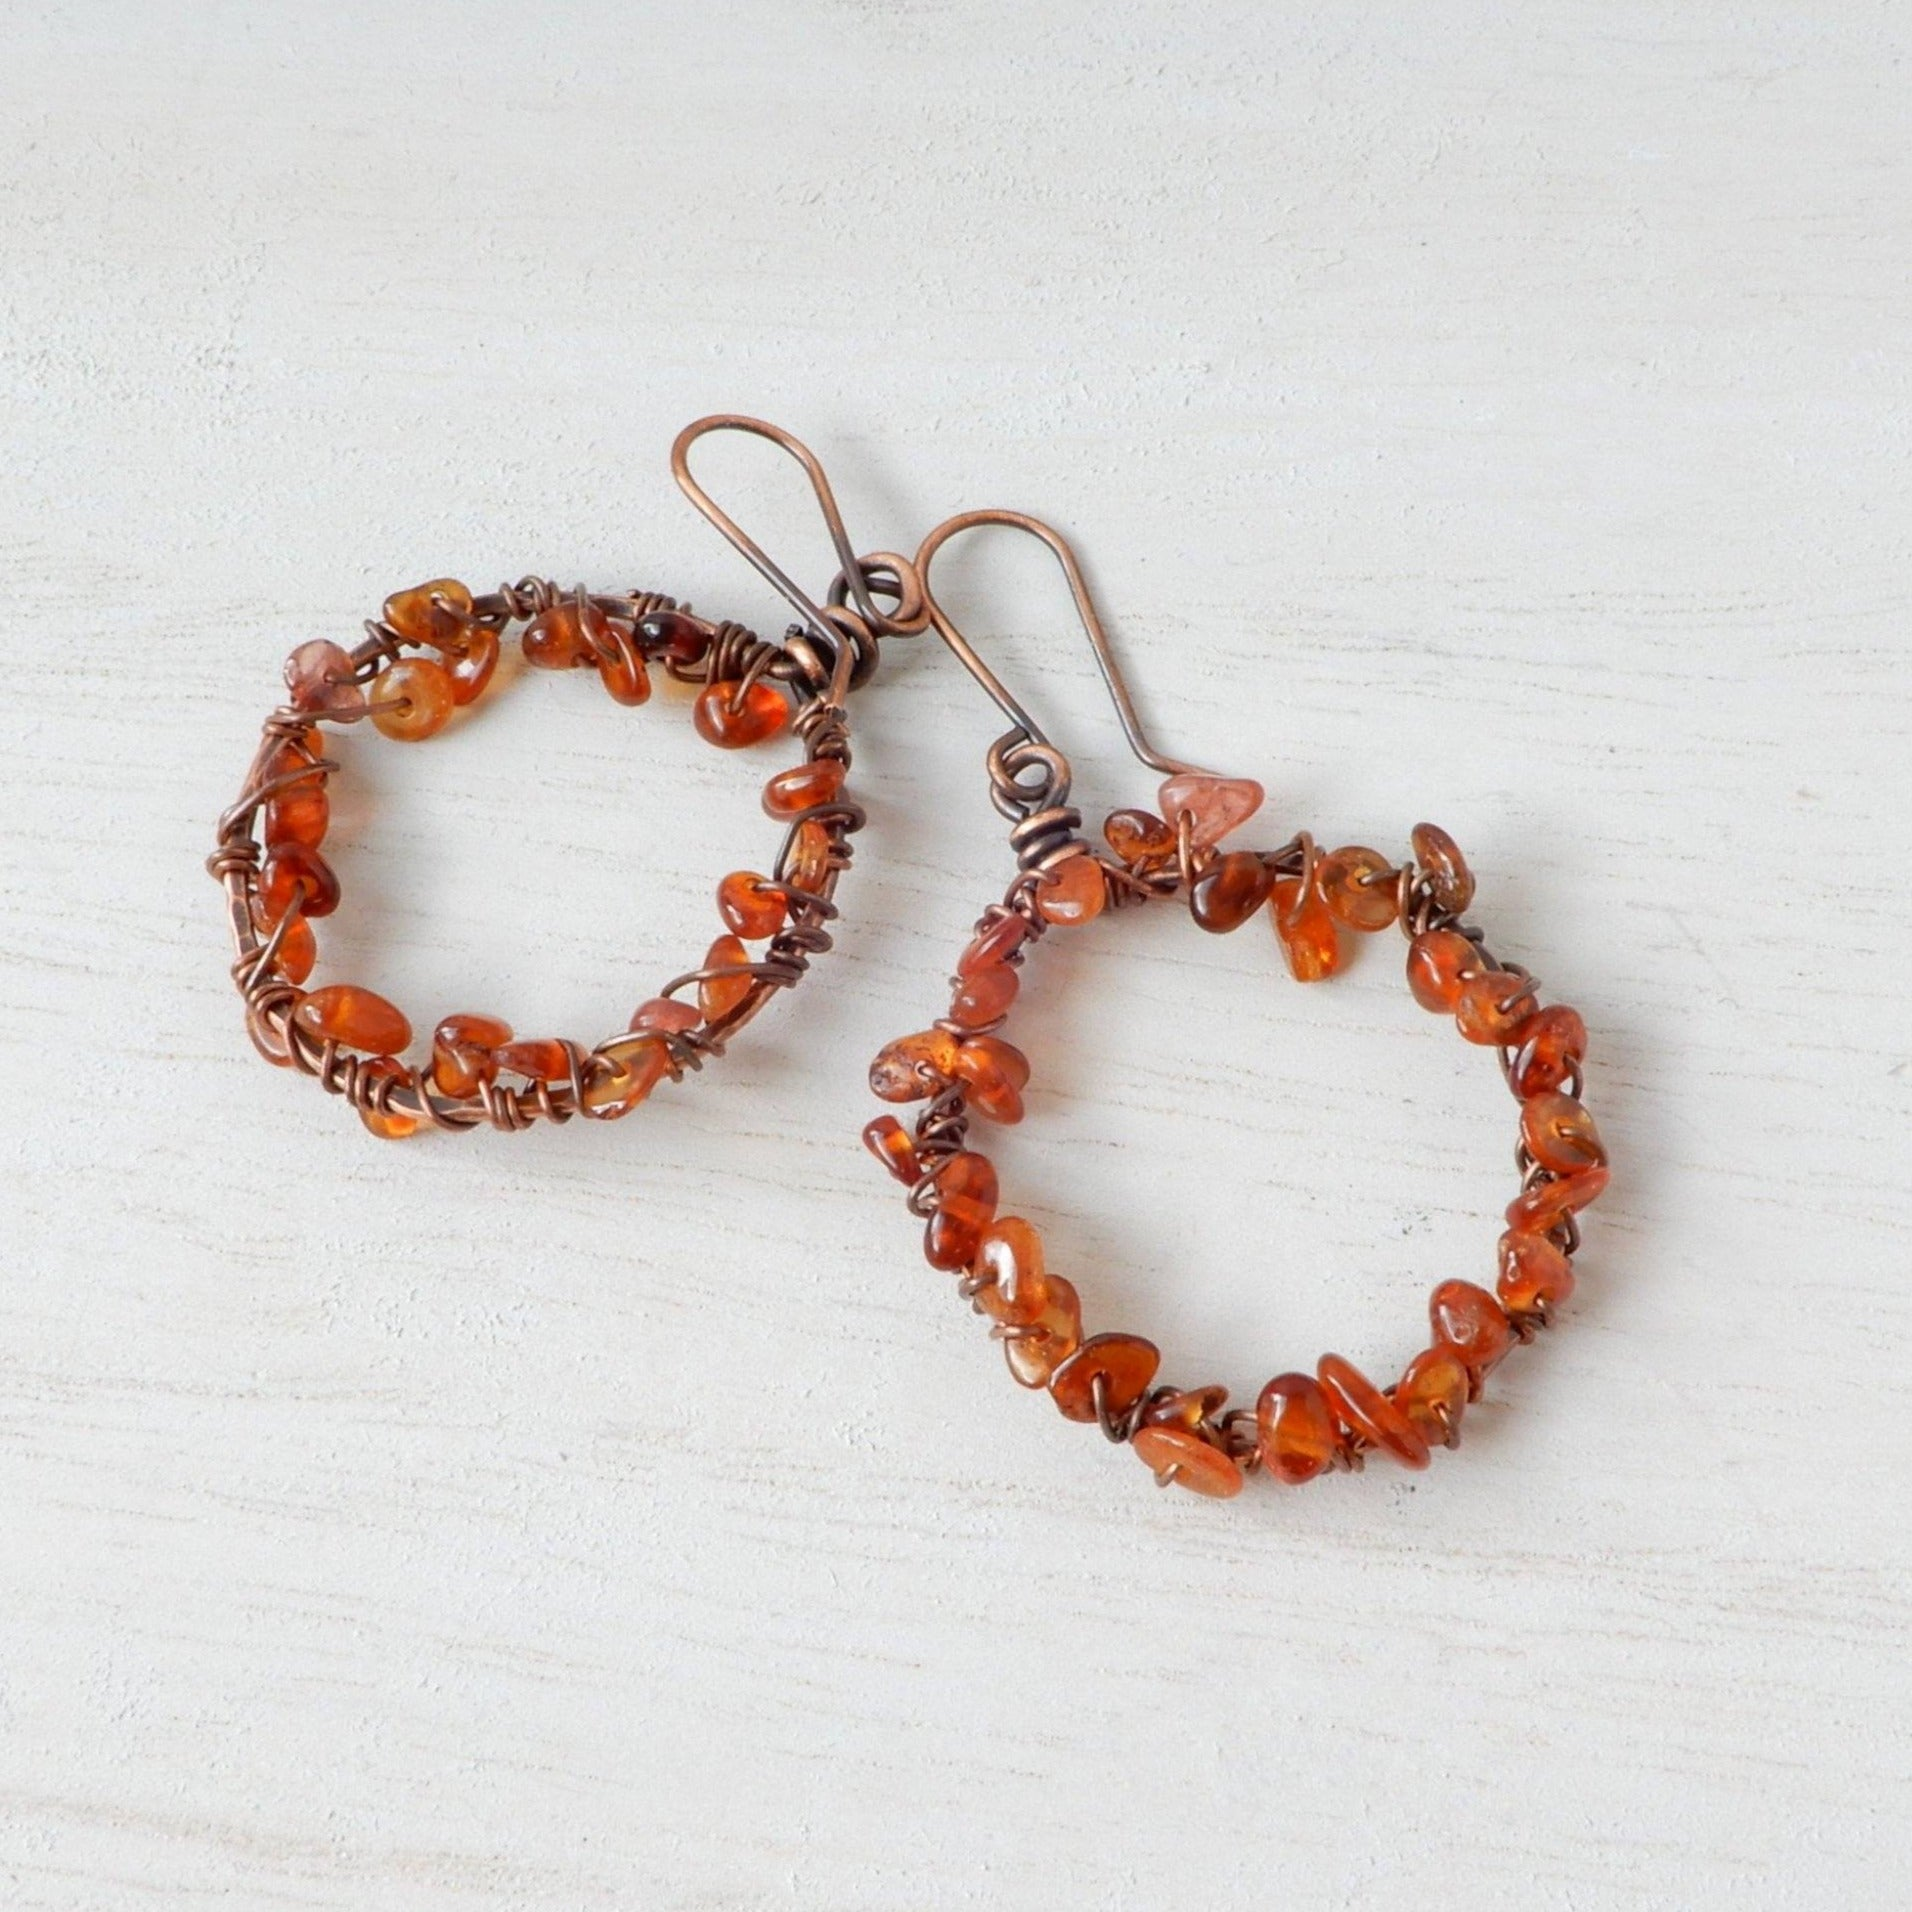 Earrings - Copper Hoop Orange Garnet Earrings: Sunburst